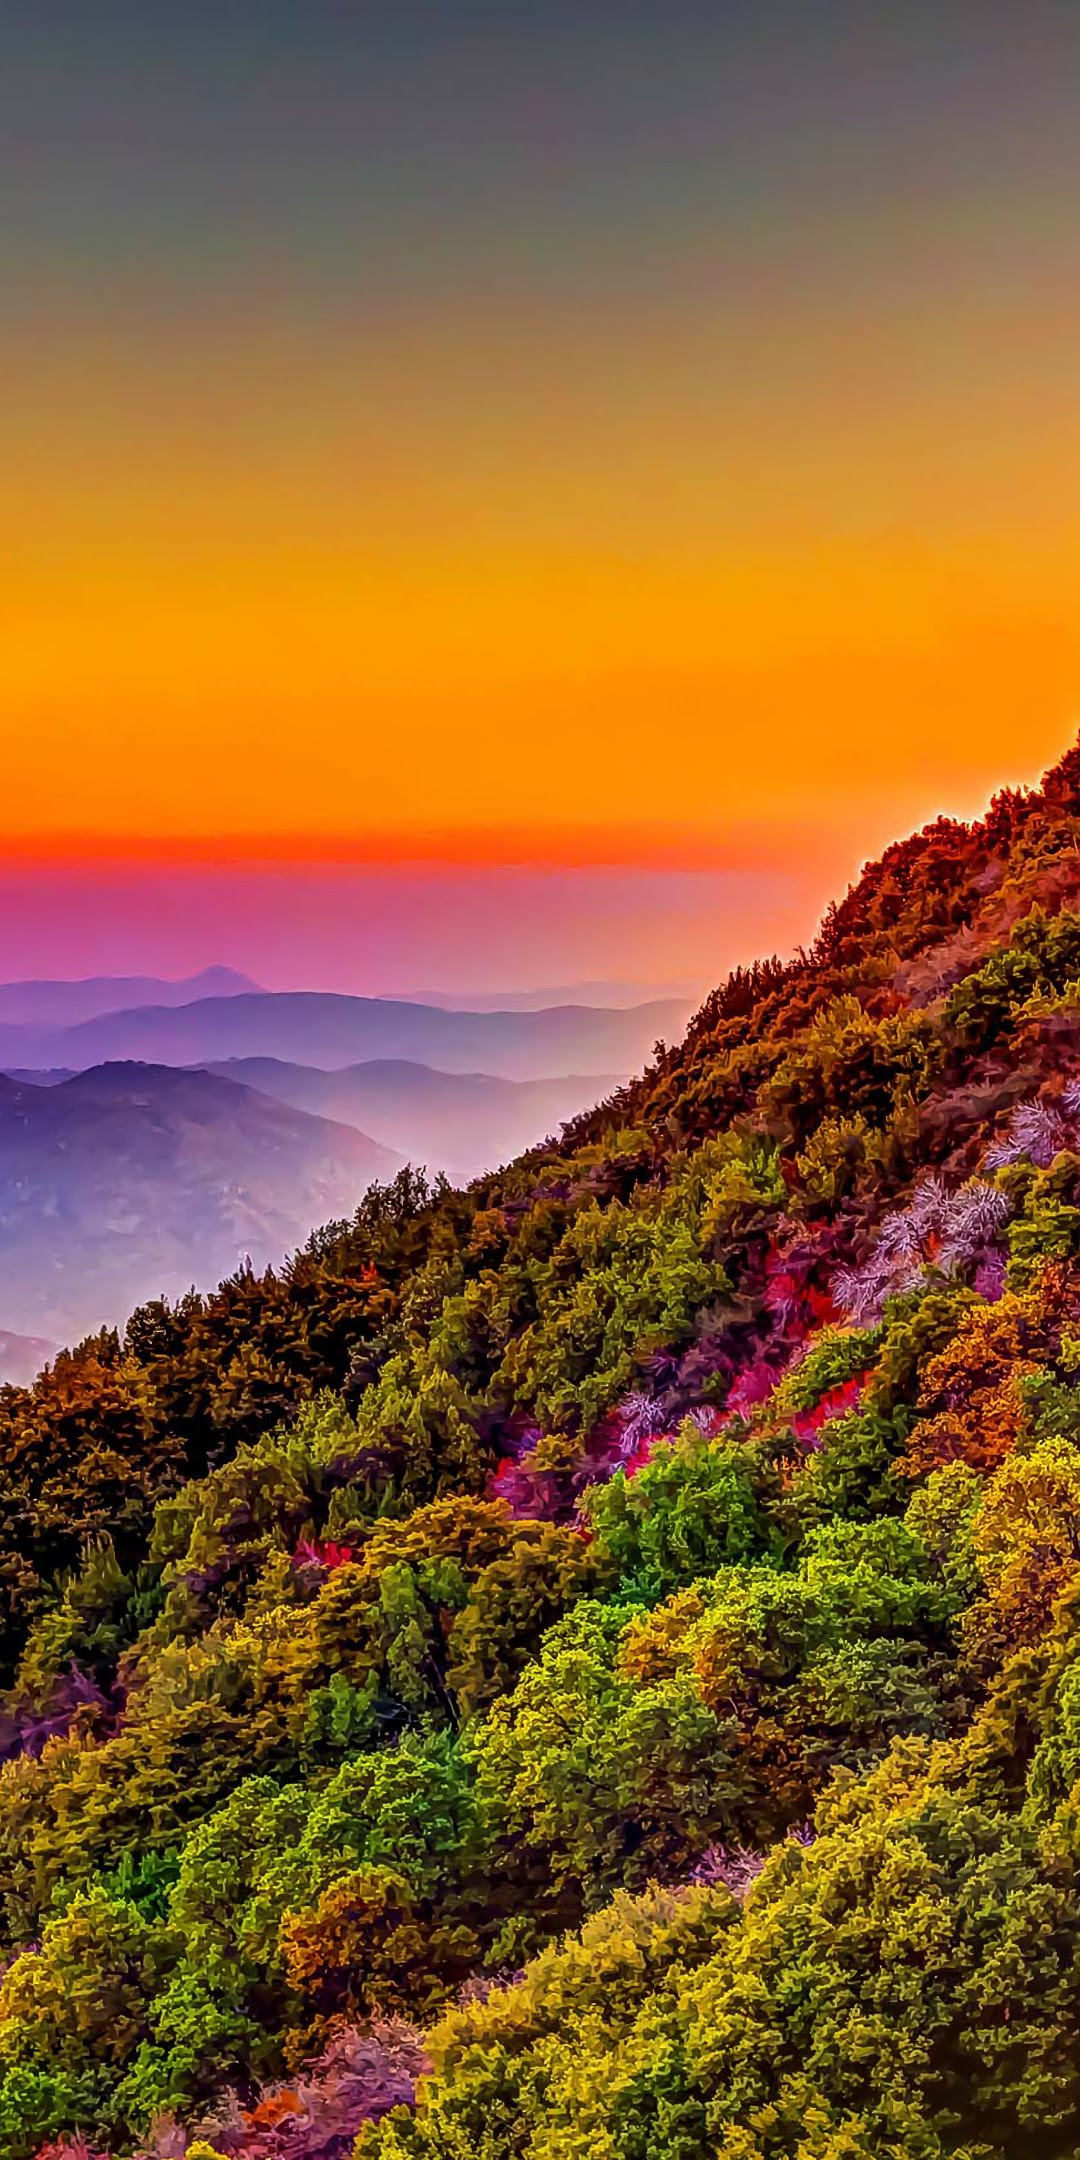 Mountain, Colorful, Forest, Nature, Sunset, Scenery, - Colorful Wallpaper Iphone 11 - HD Wallpaper